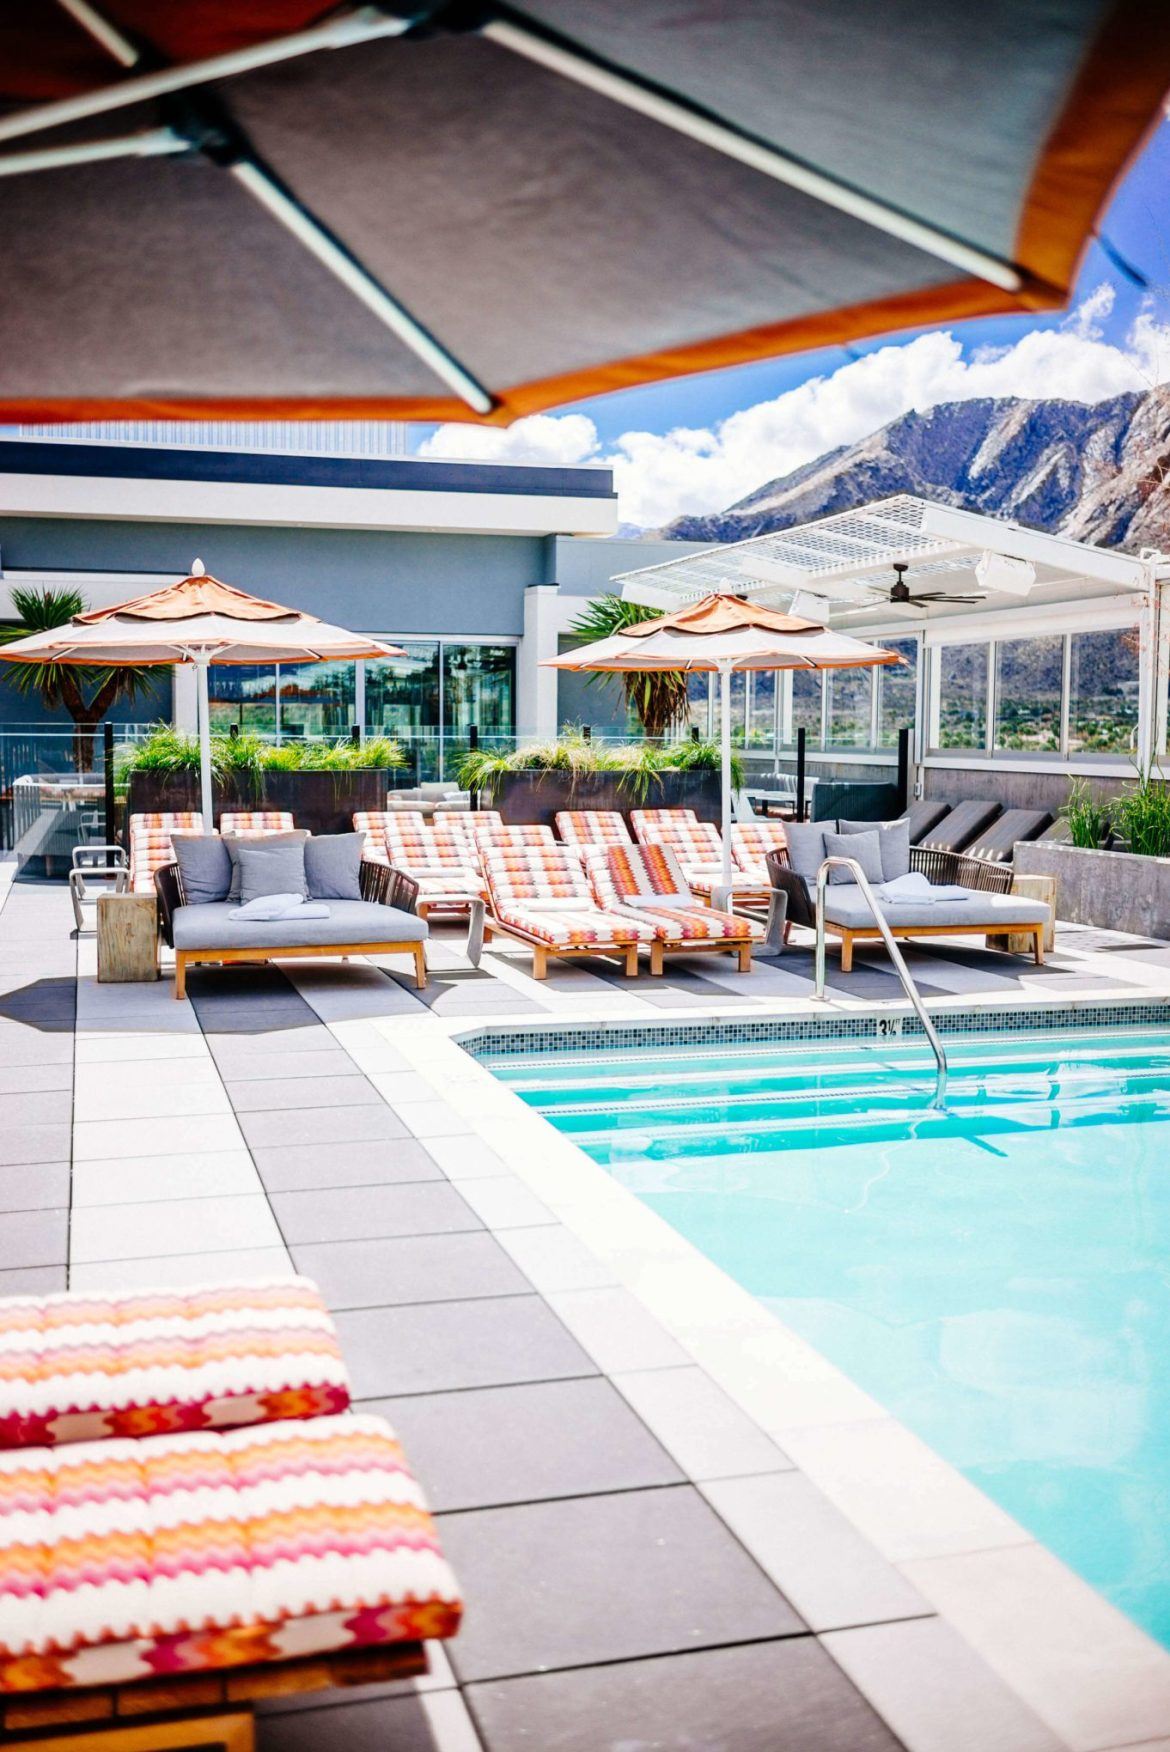 The Kimpton Rowan Hotel in Palm Springs has one of the best rooftop pools and patios in Palm Springs, it's a dessert retreat, The Taste Edit